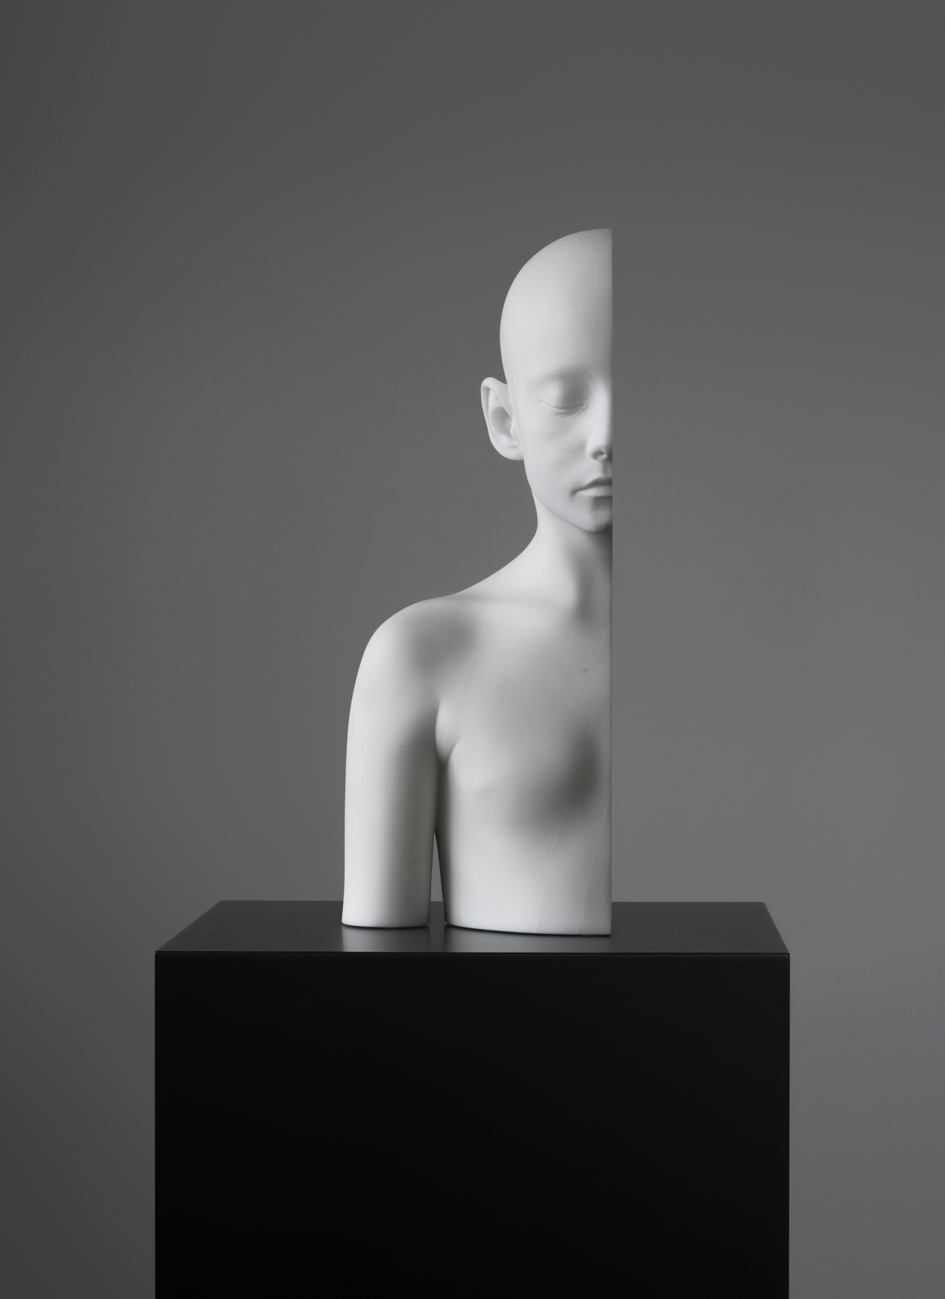 Half Girl (right), 2018, marble, 47 x 23 x 18,5 cm, edition of 3 + 2 AP.